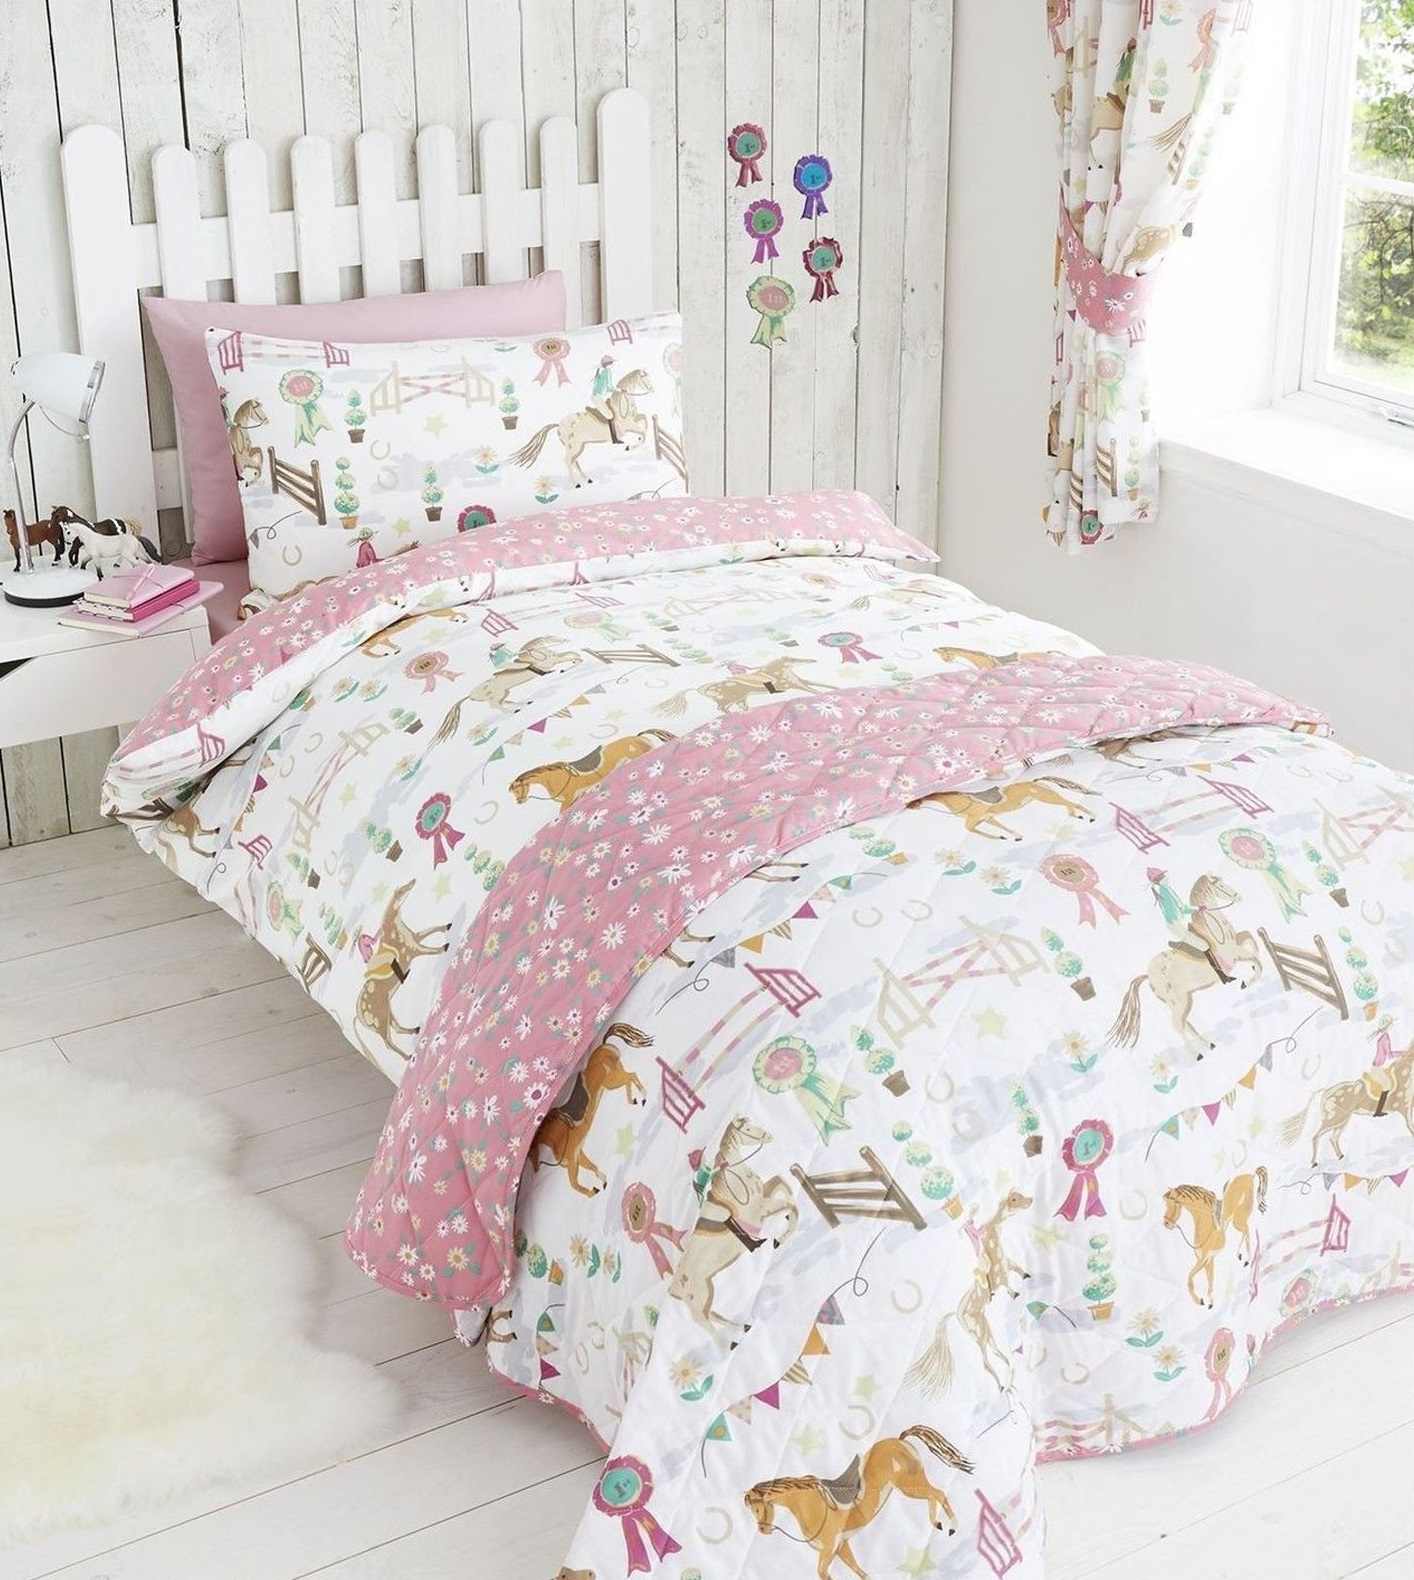 show time duvet quilt cover daisy prize girls single bedding set pink